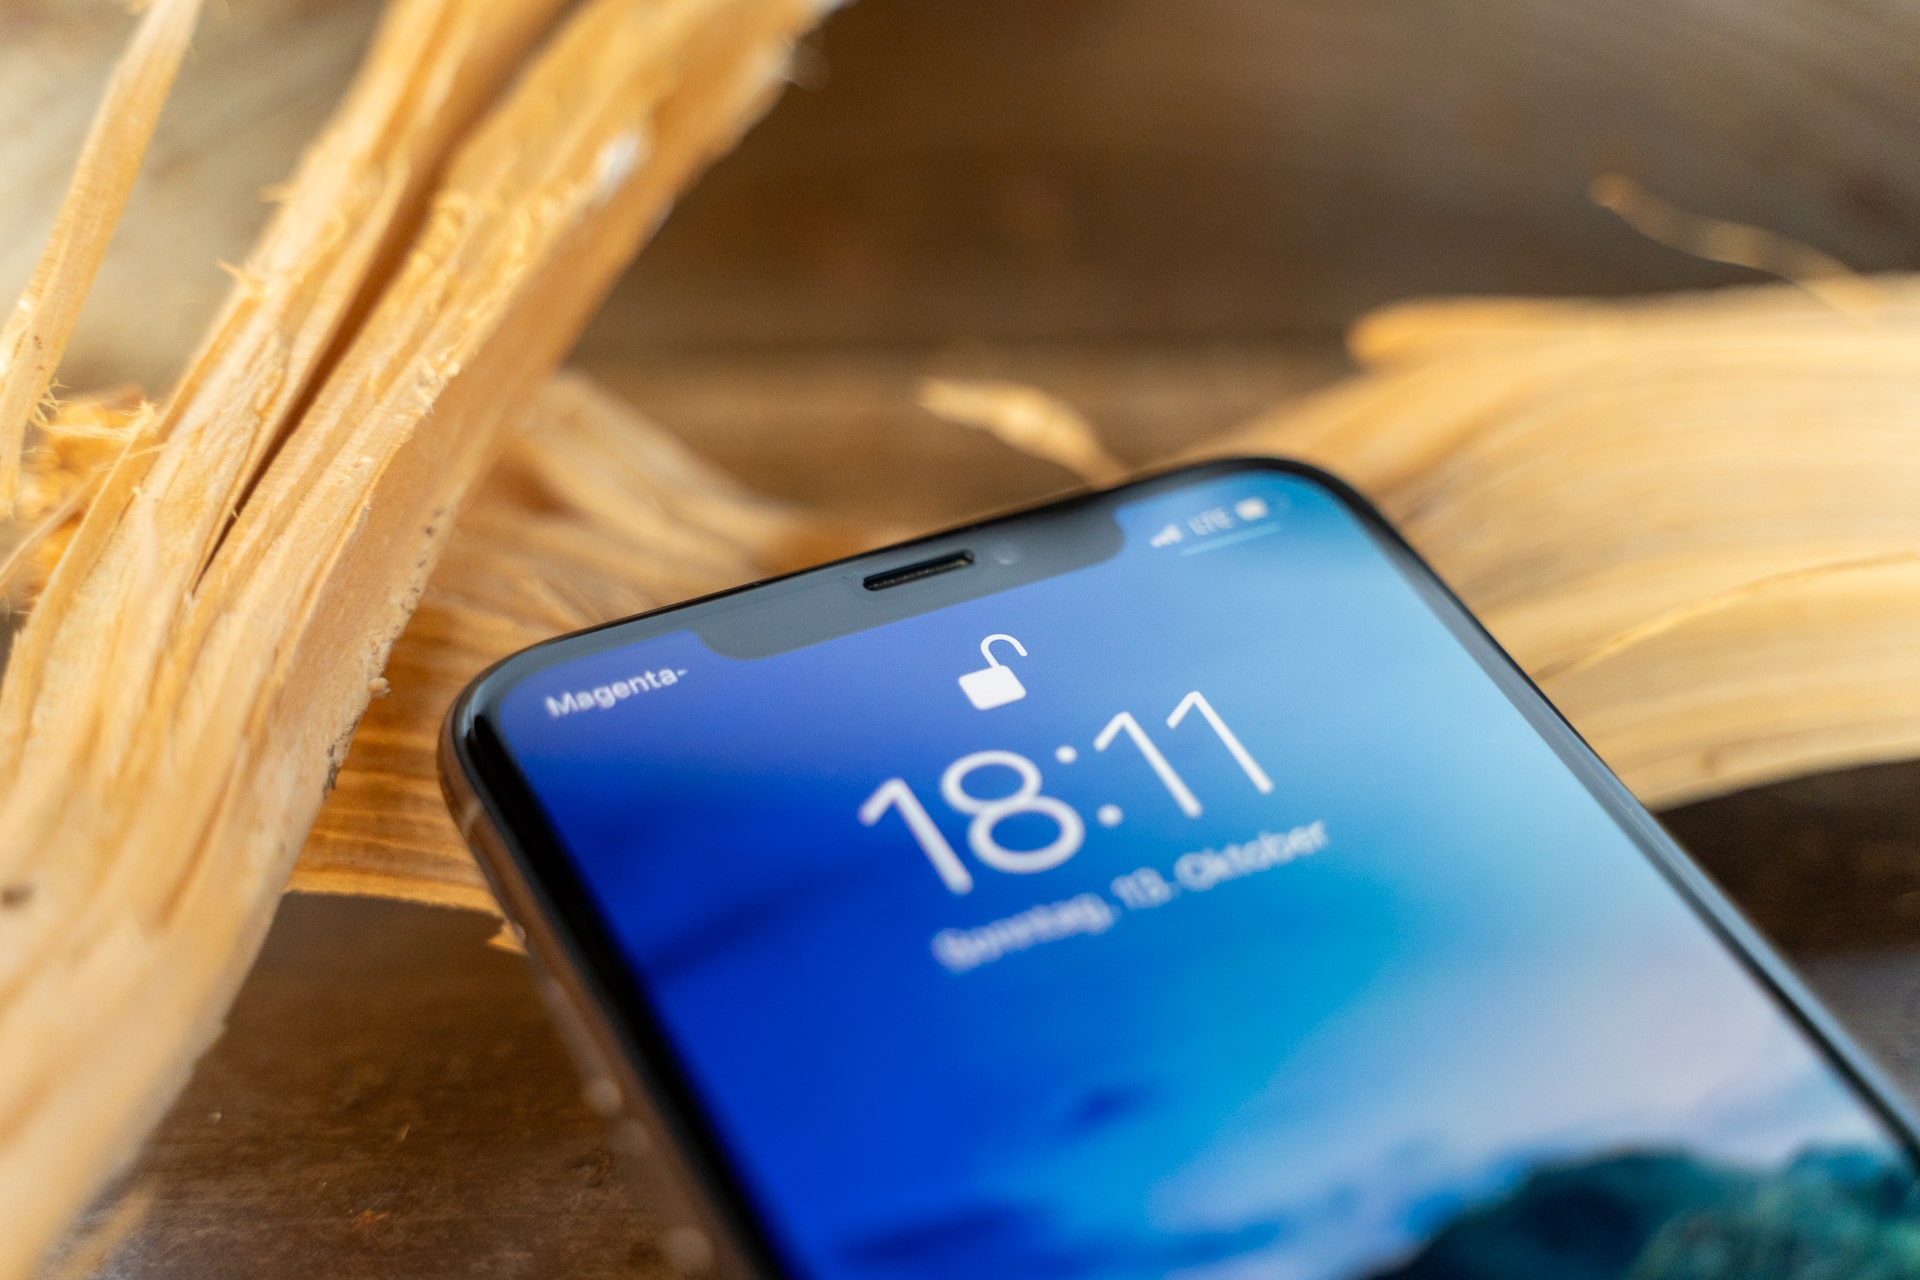 Kein Unterschied in der Verwendung des iPhone 11 Pro Max mit CellBee, Fabian Geissler, Review, Hack4Life, Apple, iPhone 11, iPhone 11 Pro Max, iPhone mit Holz im Hintergrund